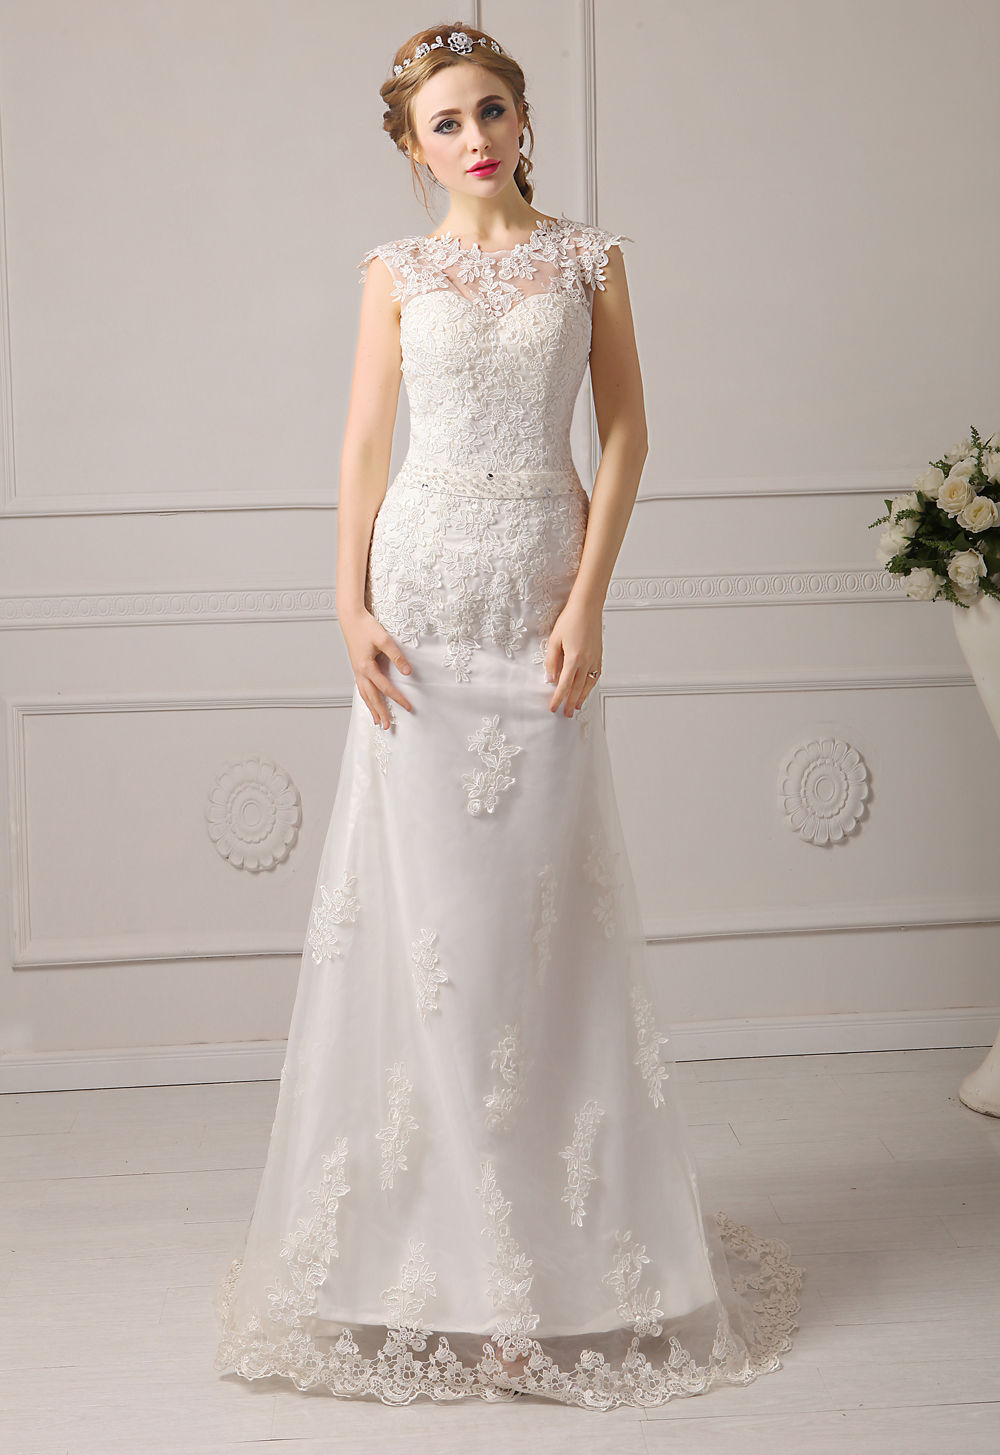 Aliexpress Buy Elegant Lace White Ivory Wedding Dress For Wedding Party Bride Gown Tank